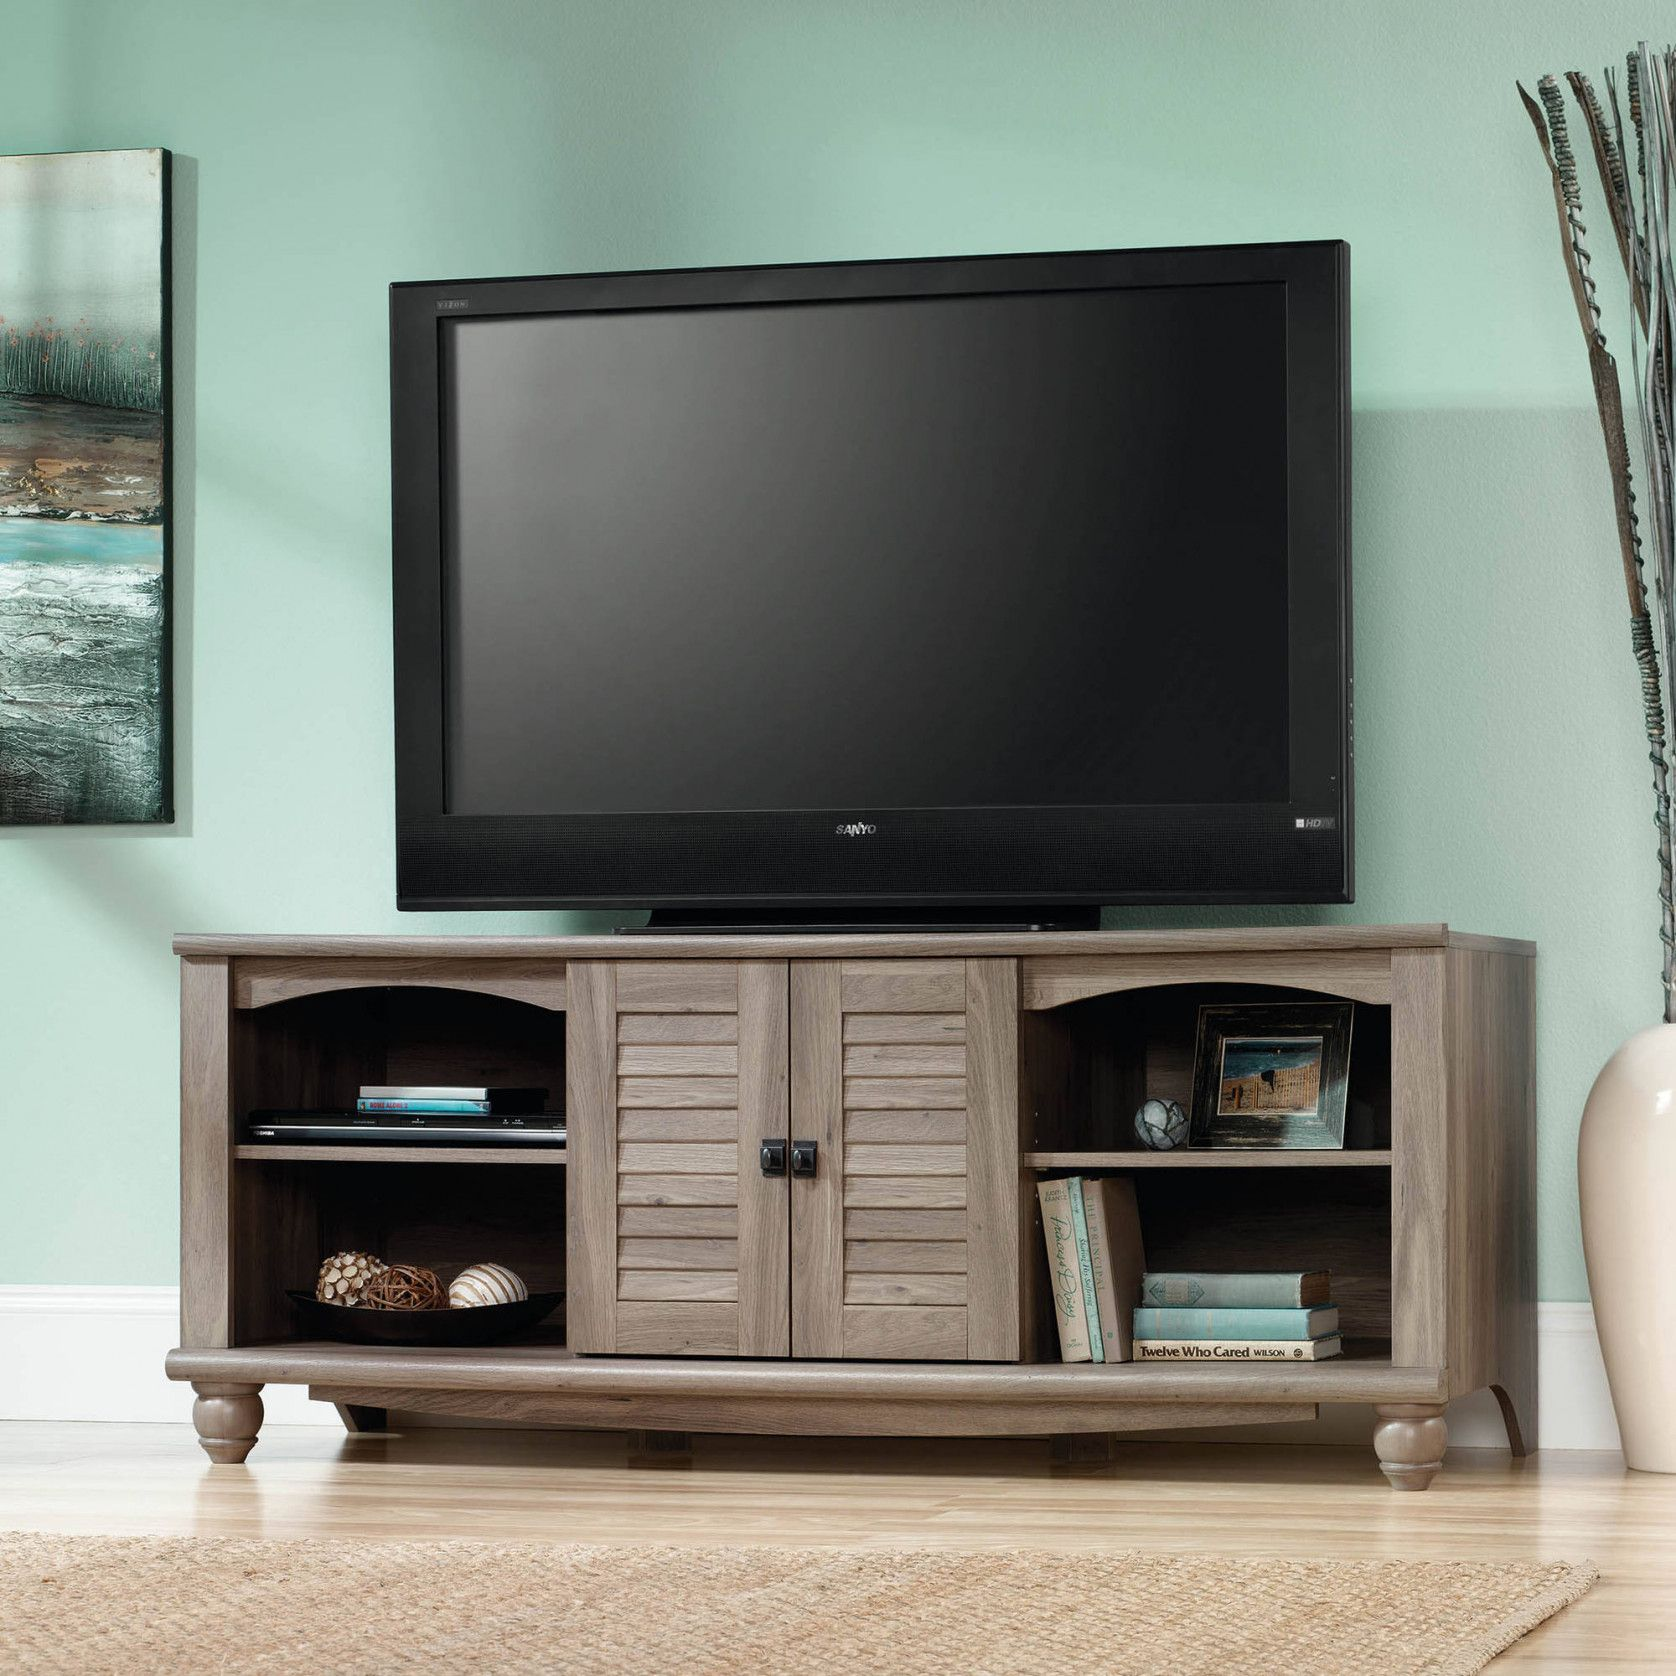 Charmant 70+ Sauder Tv Stands And Cabinets   Kitchen Shelf Display Ideas Check More  At Http